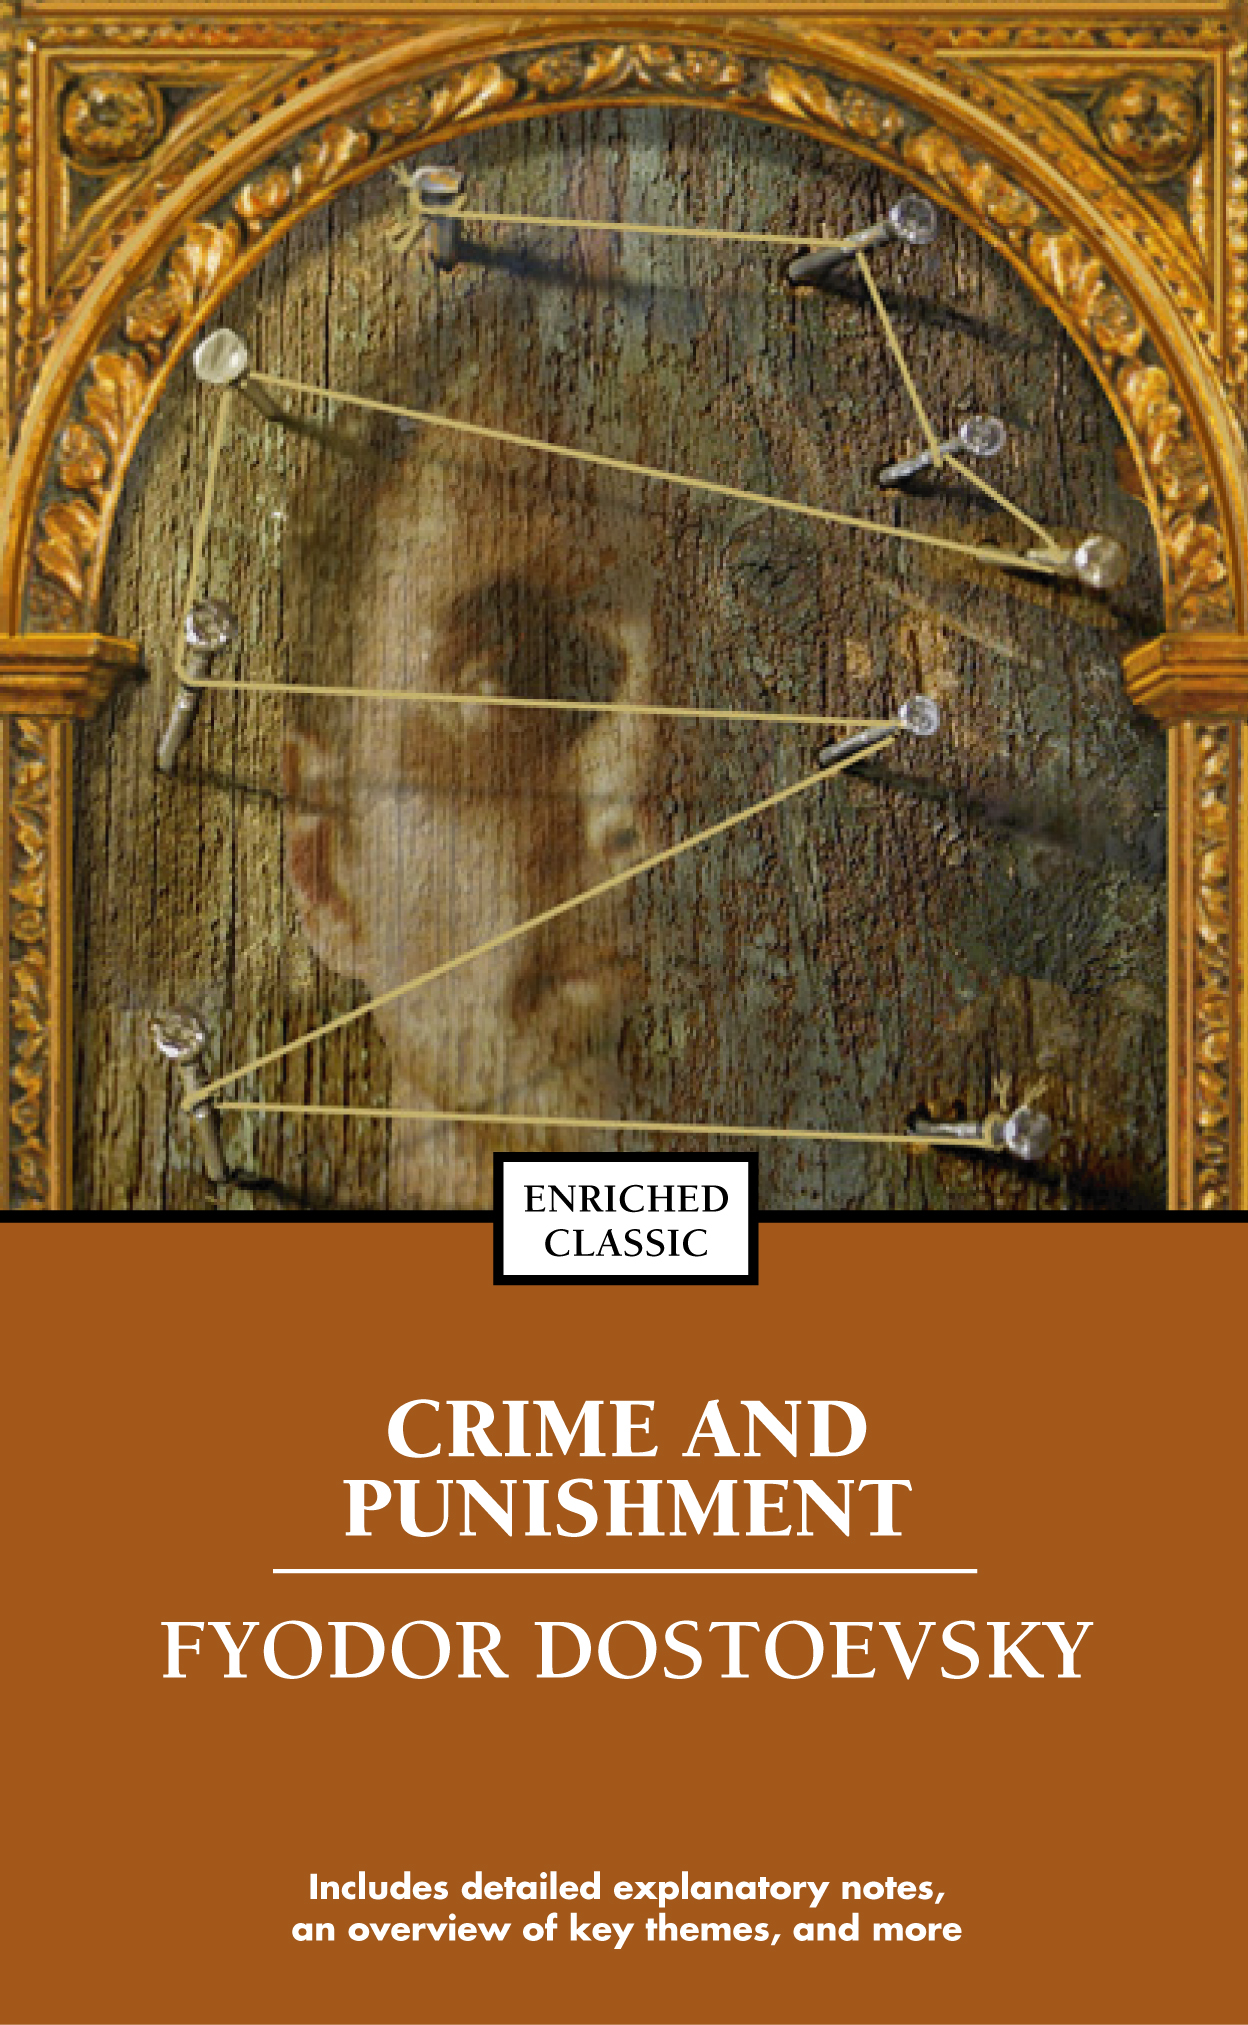 a literary analysis of pride and guilt in crime and punishment by fyodor dostoevsky Fyodor dostoevsky published this novel in 1866  the tone and mood of crime and punishment 3 characters:  feels very lonely after the crime the pride and .